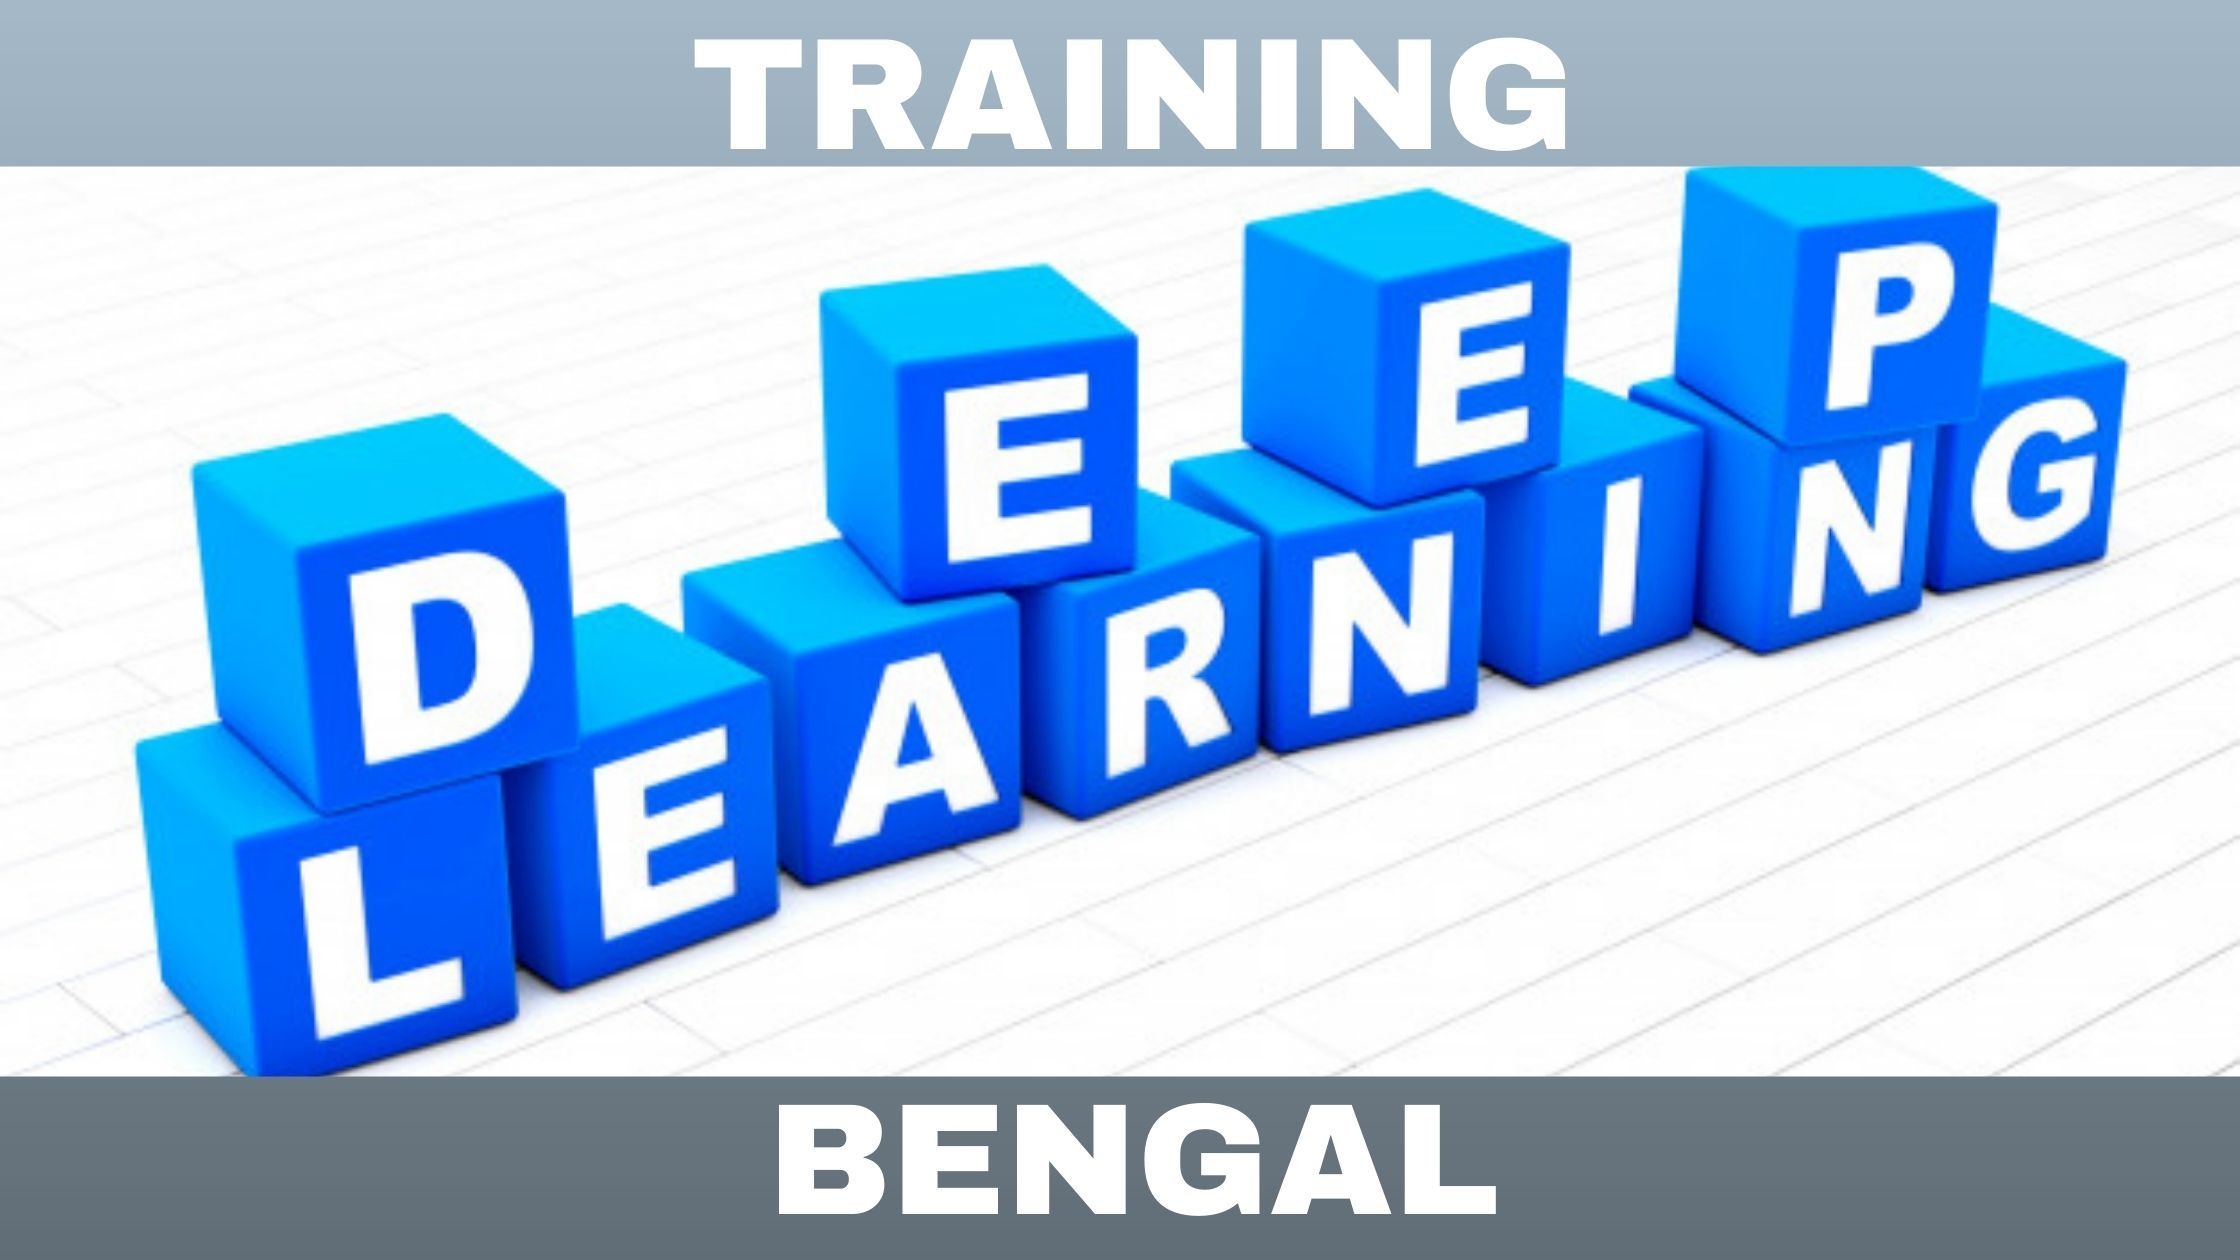 deep_learning_in_bengal-background.jpeg